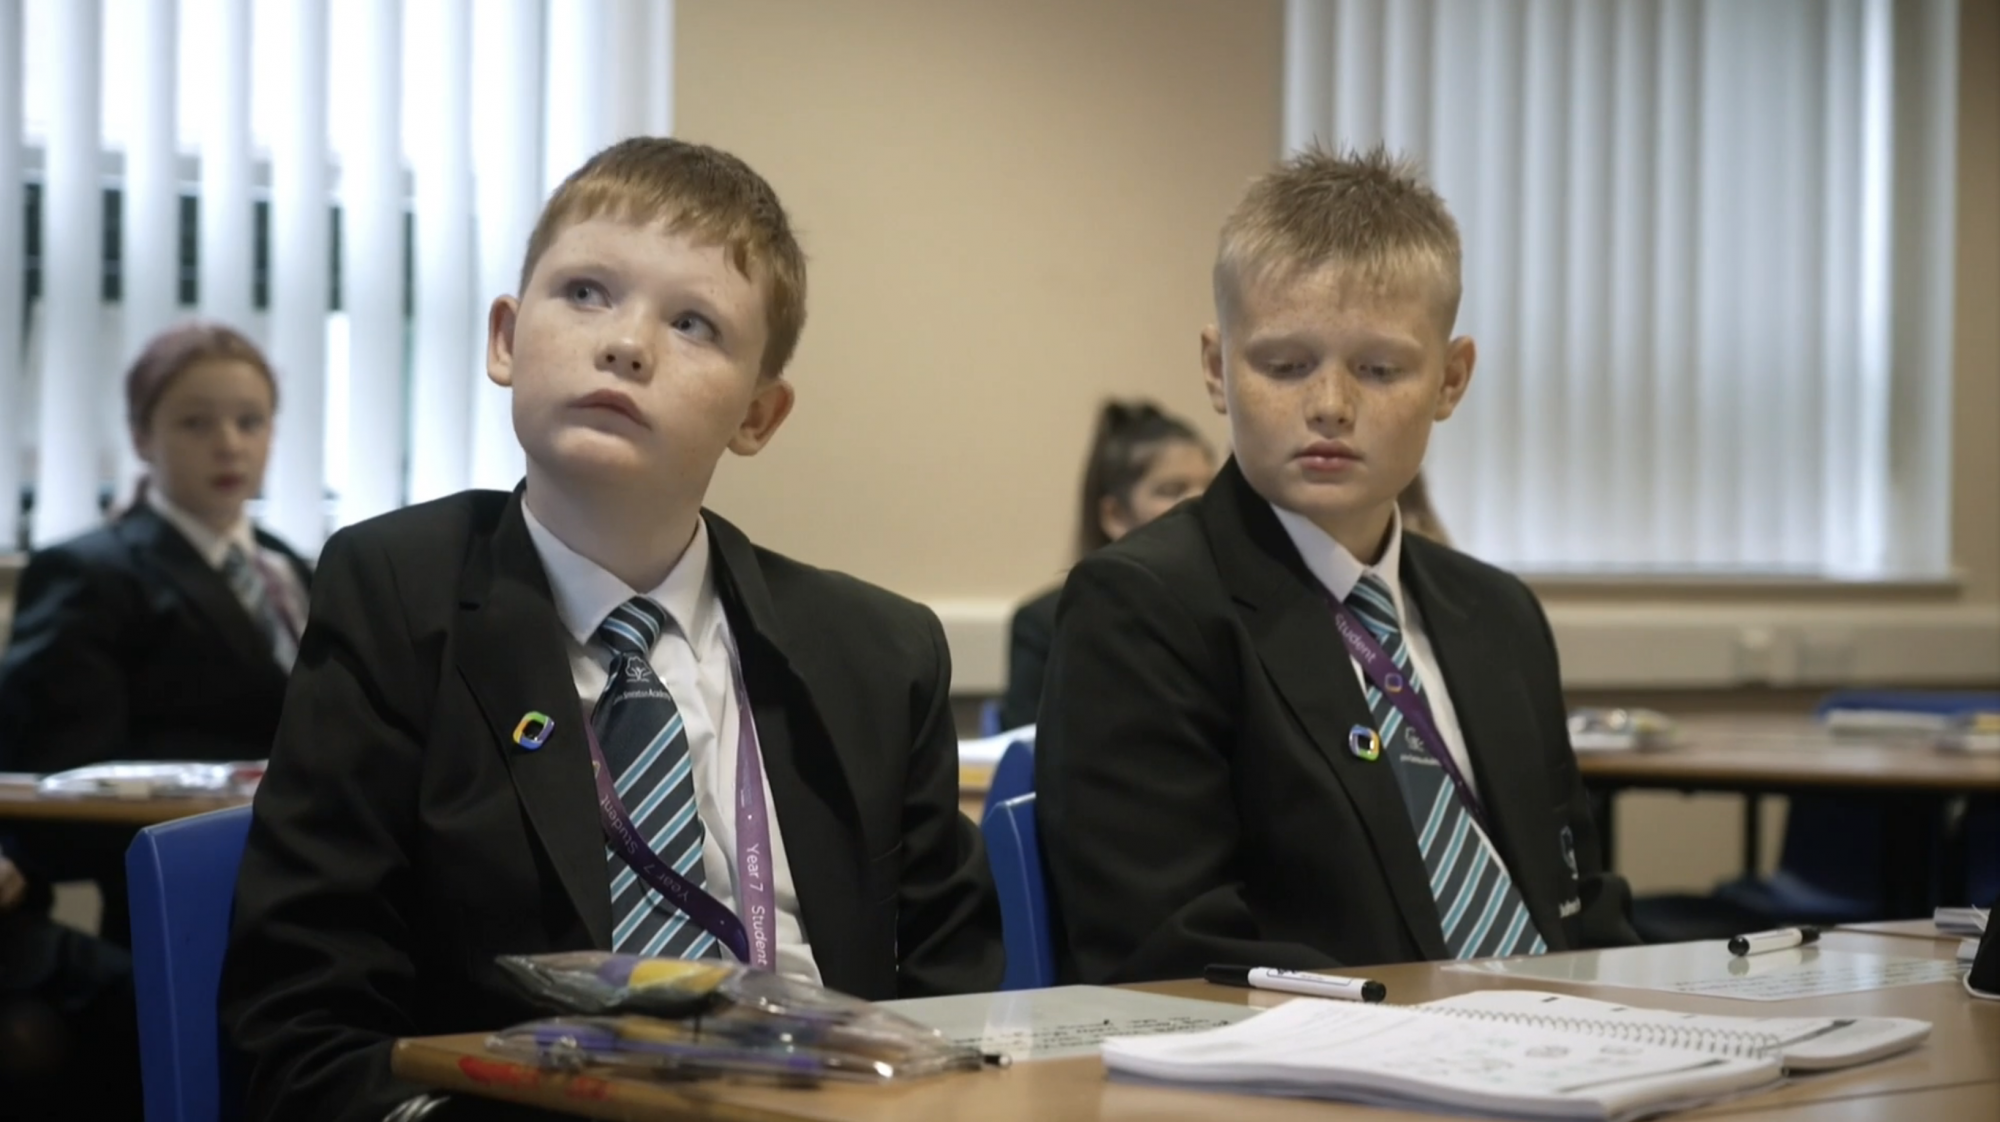 Covid: jabs for 12-15s are dividing opinion